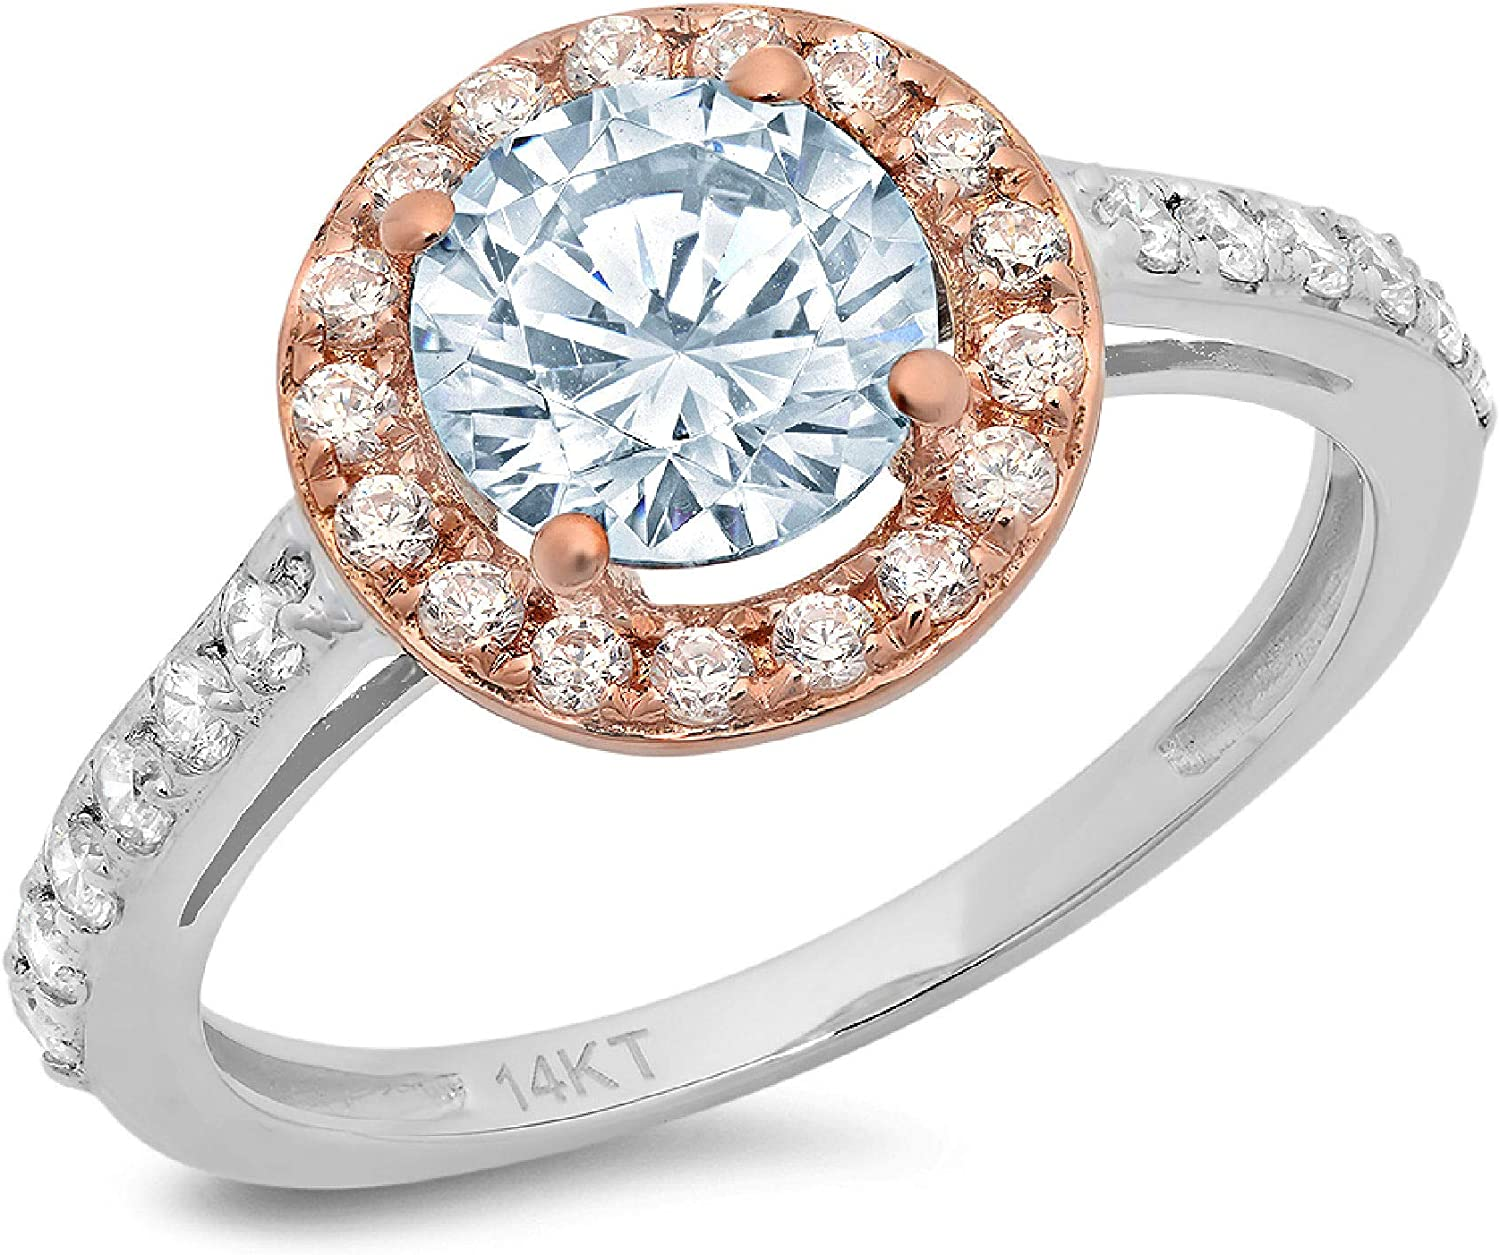 2.40 ct Round Cut Solitaire Accent Halo Genuine Flawless Blue Simulated Diamond Gemstone Engagement Promise Statement Anniversary Bridal Wedding Ring Solid 18K White & Rose Gold